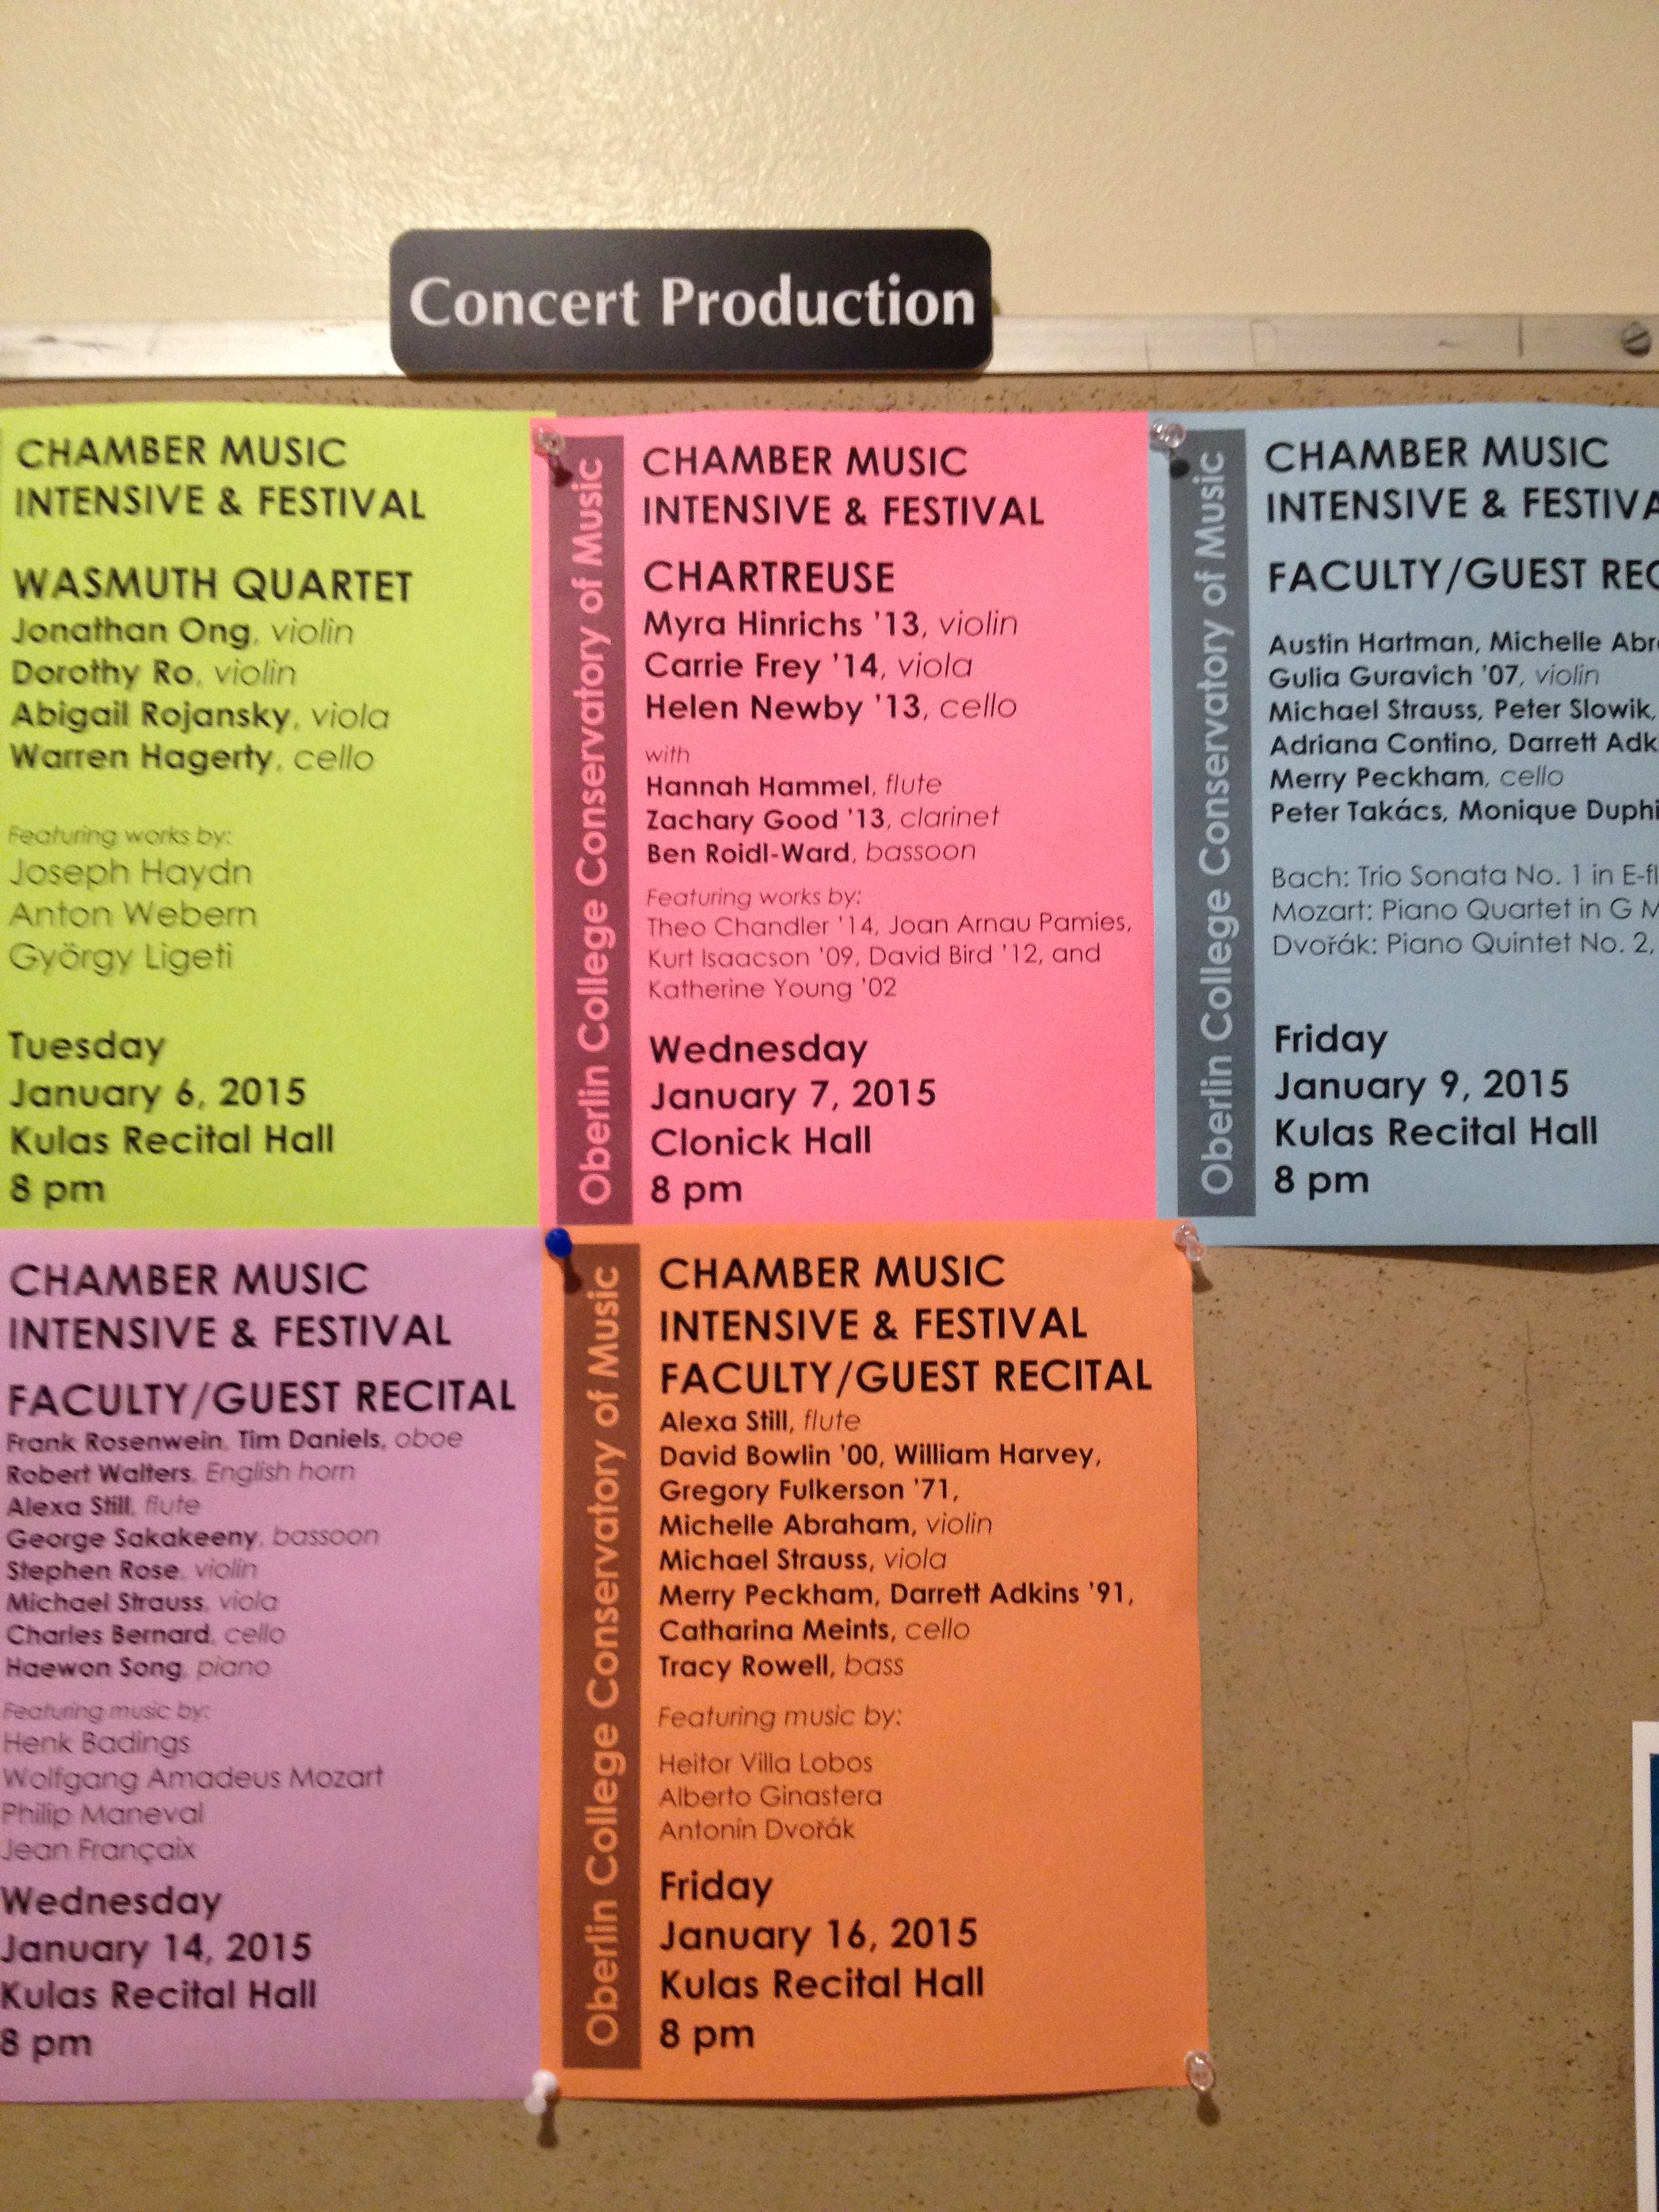 Posters by Concert Productions